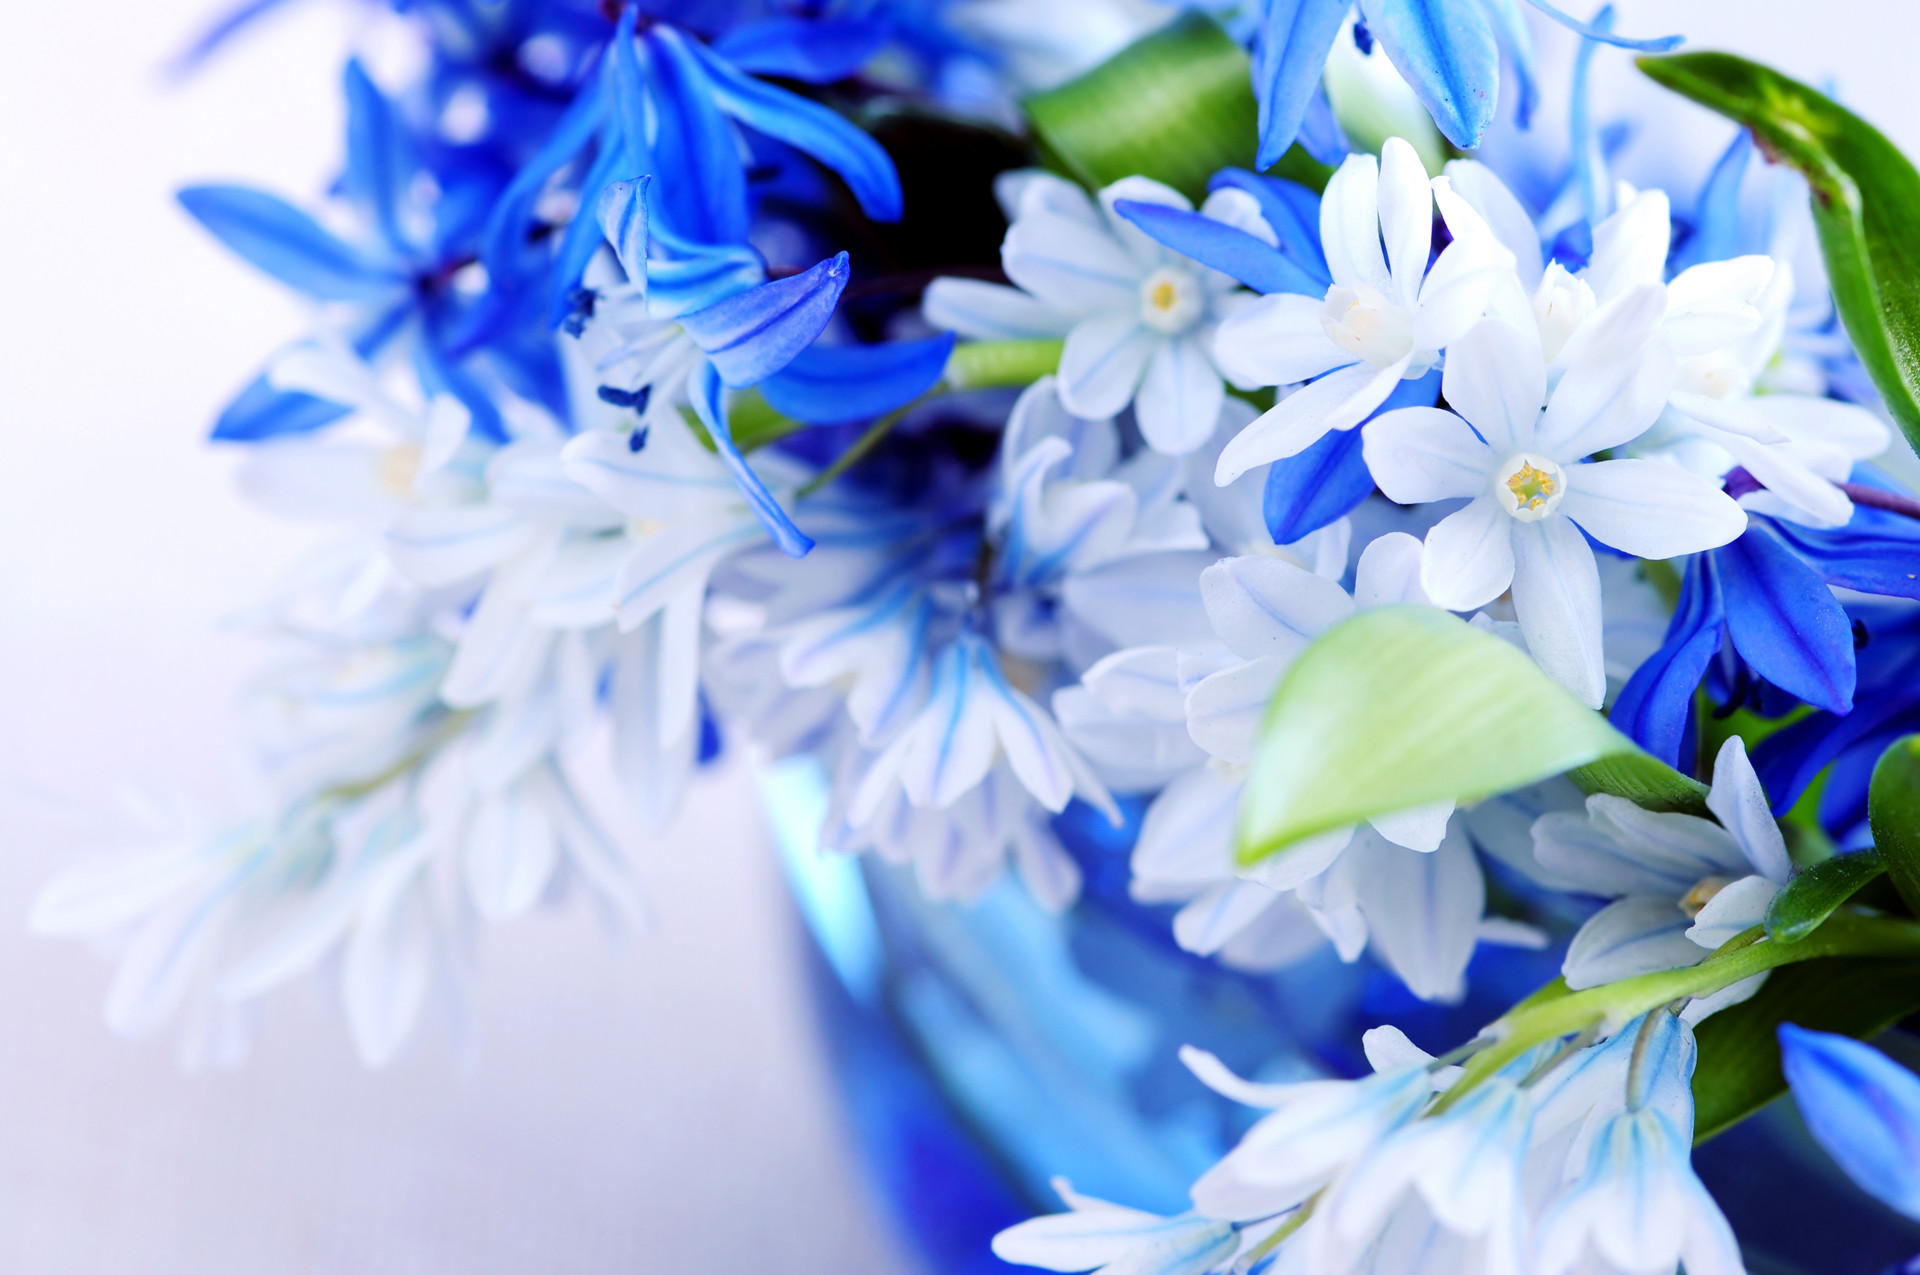 Res: 1920x1275, Spring 66, Free Wallpapers, Free Desktop Wallpapers, HD Wallpapers